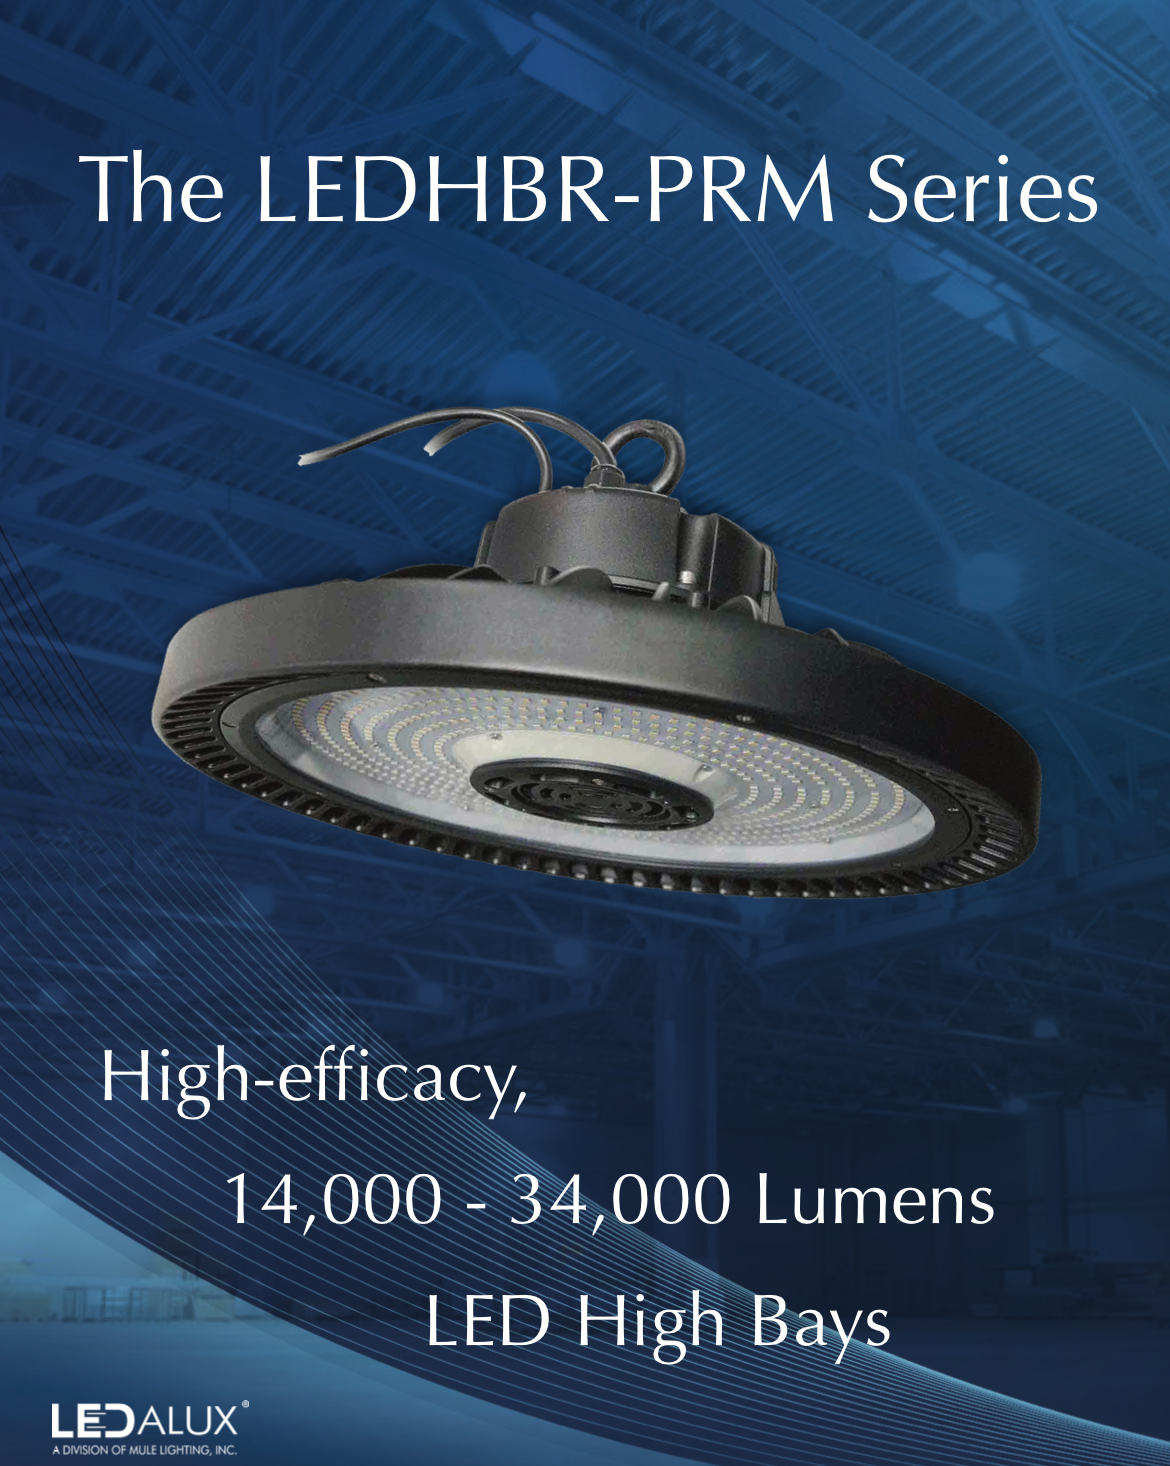 LEDalux LEDHBR-PRM Series Sell Sheet Literature